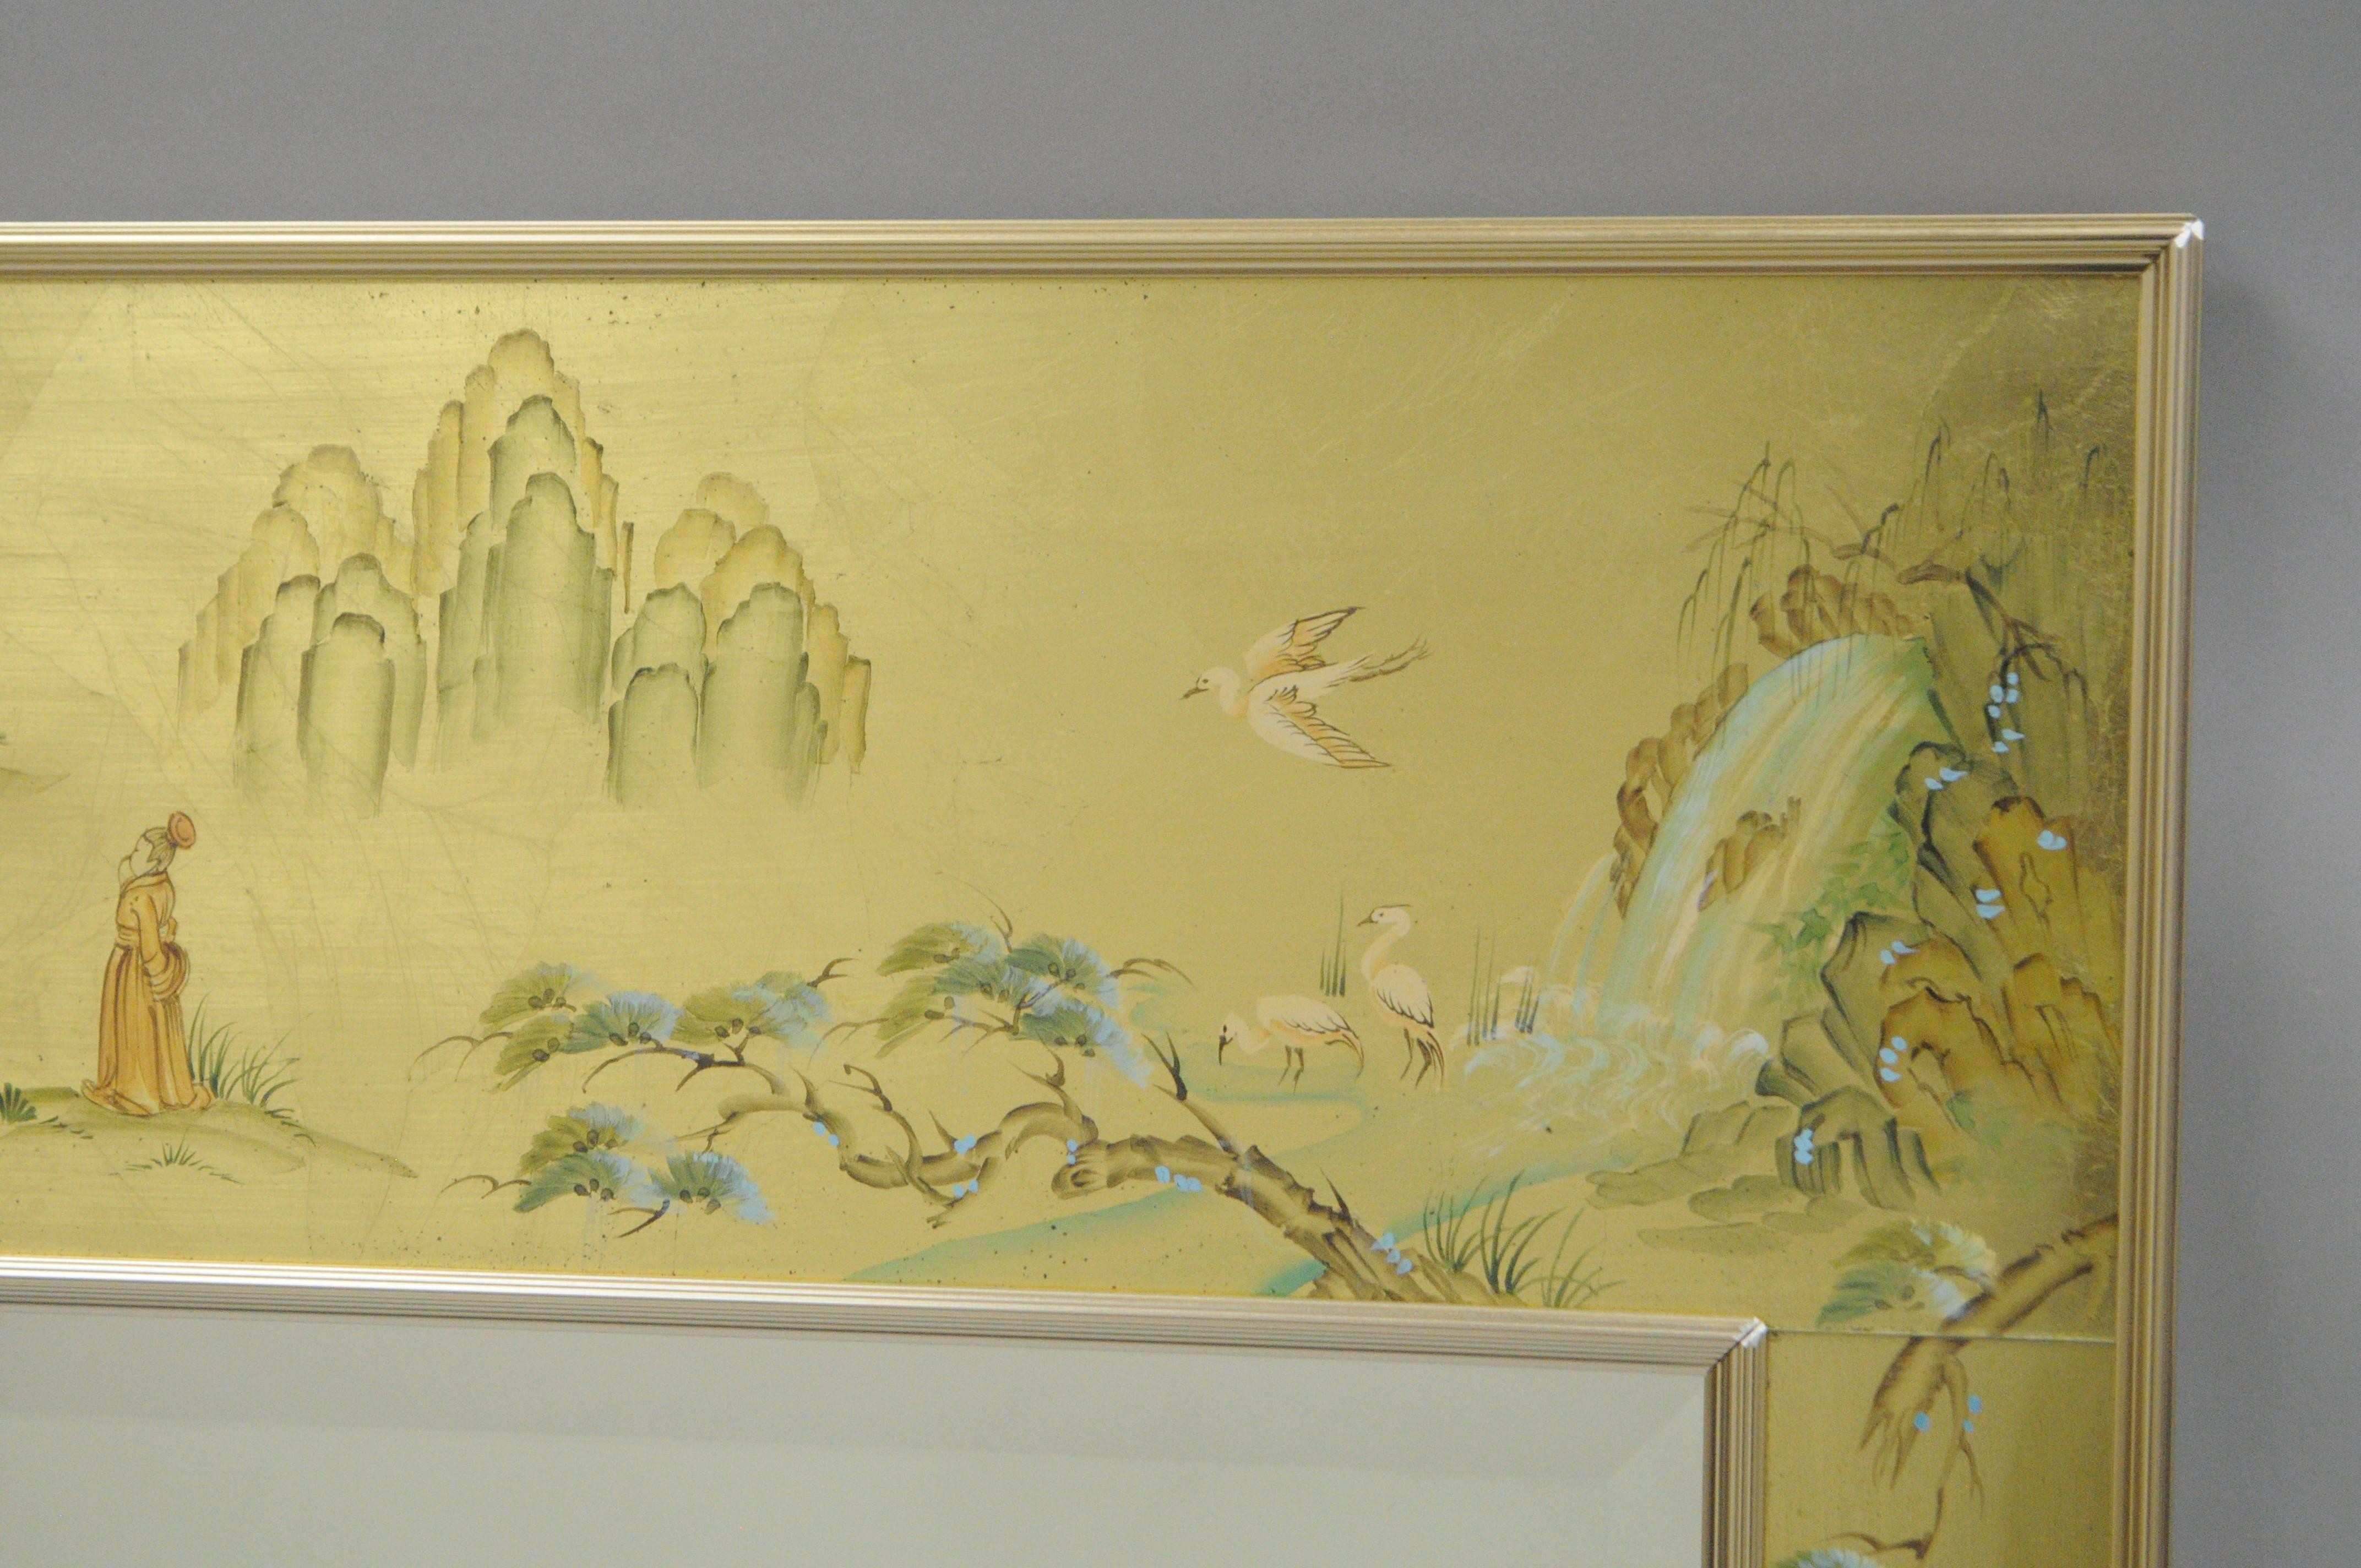 Magnificent Wall Painting Methods Motif Art & Wall Decor